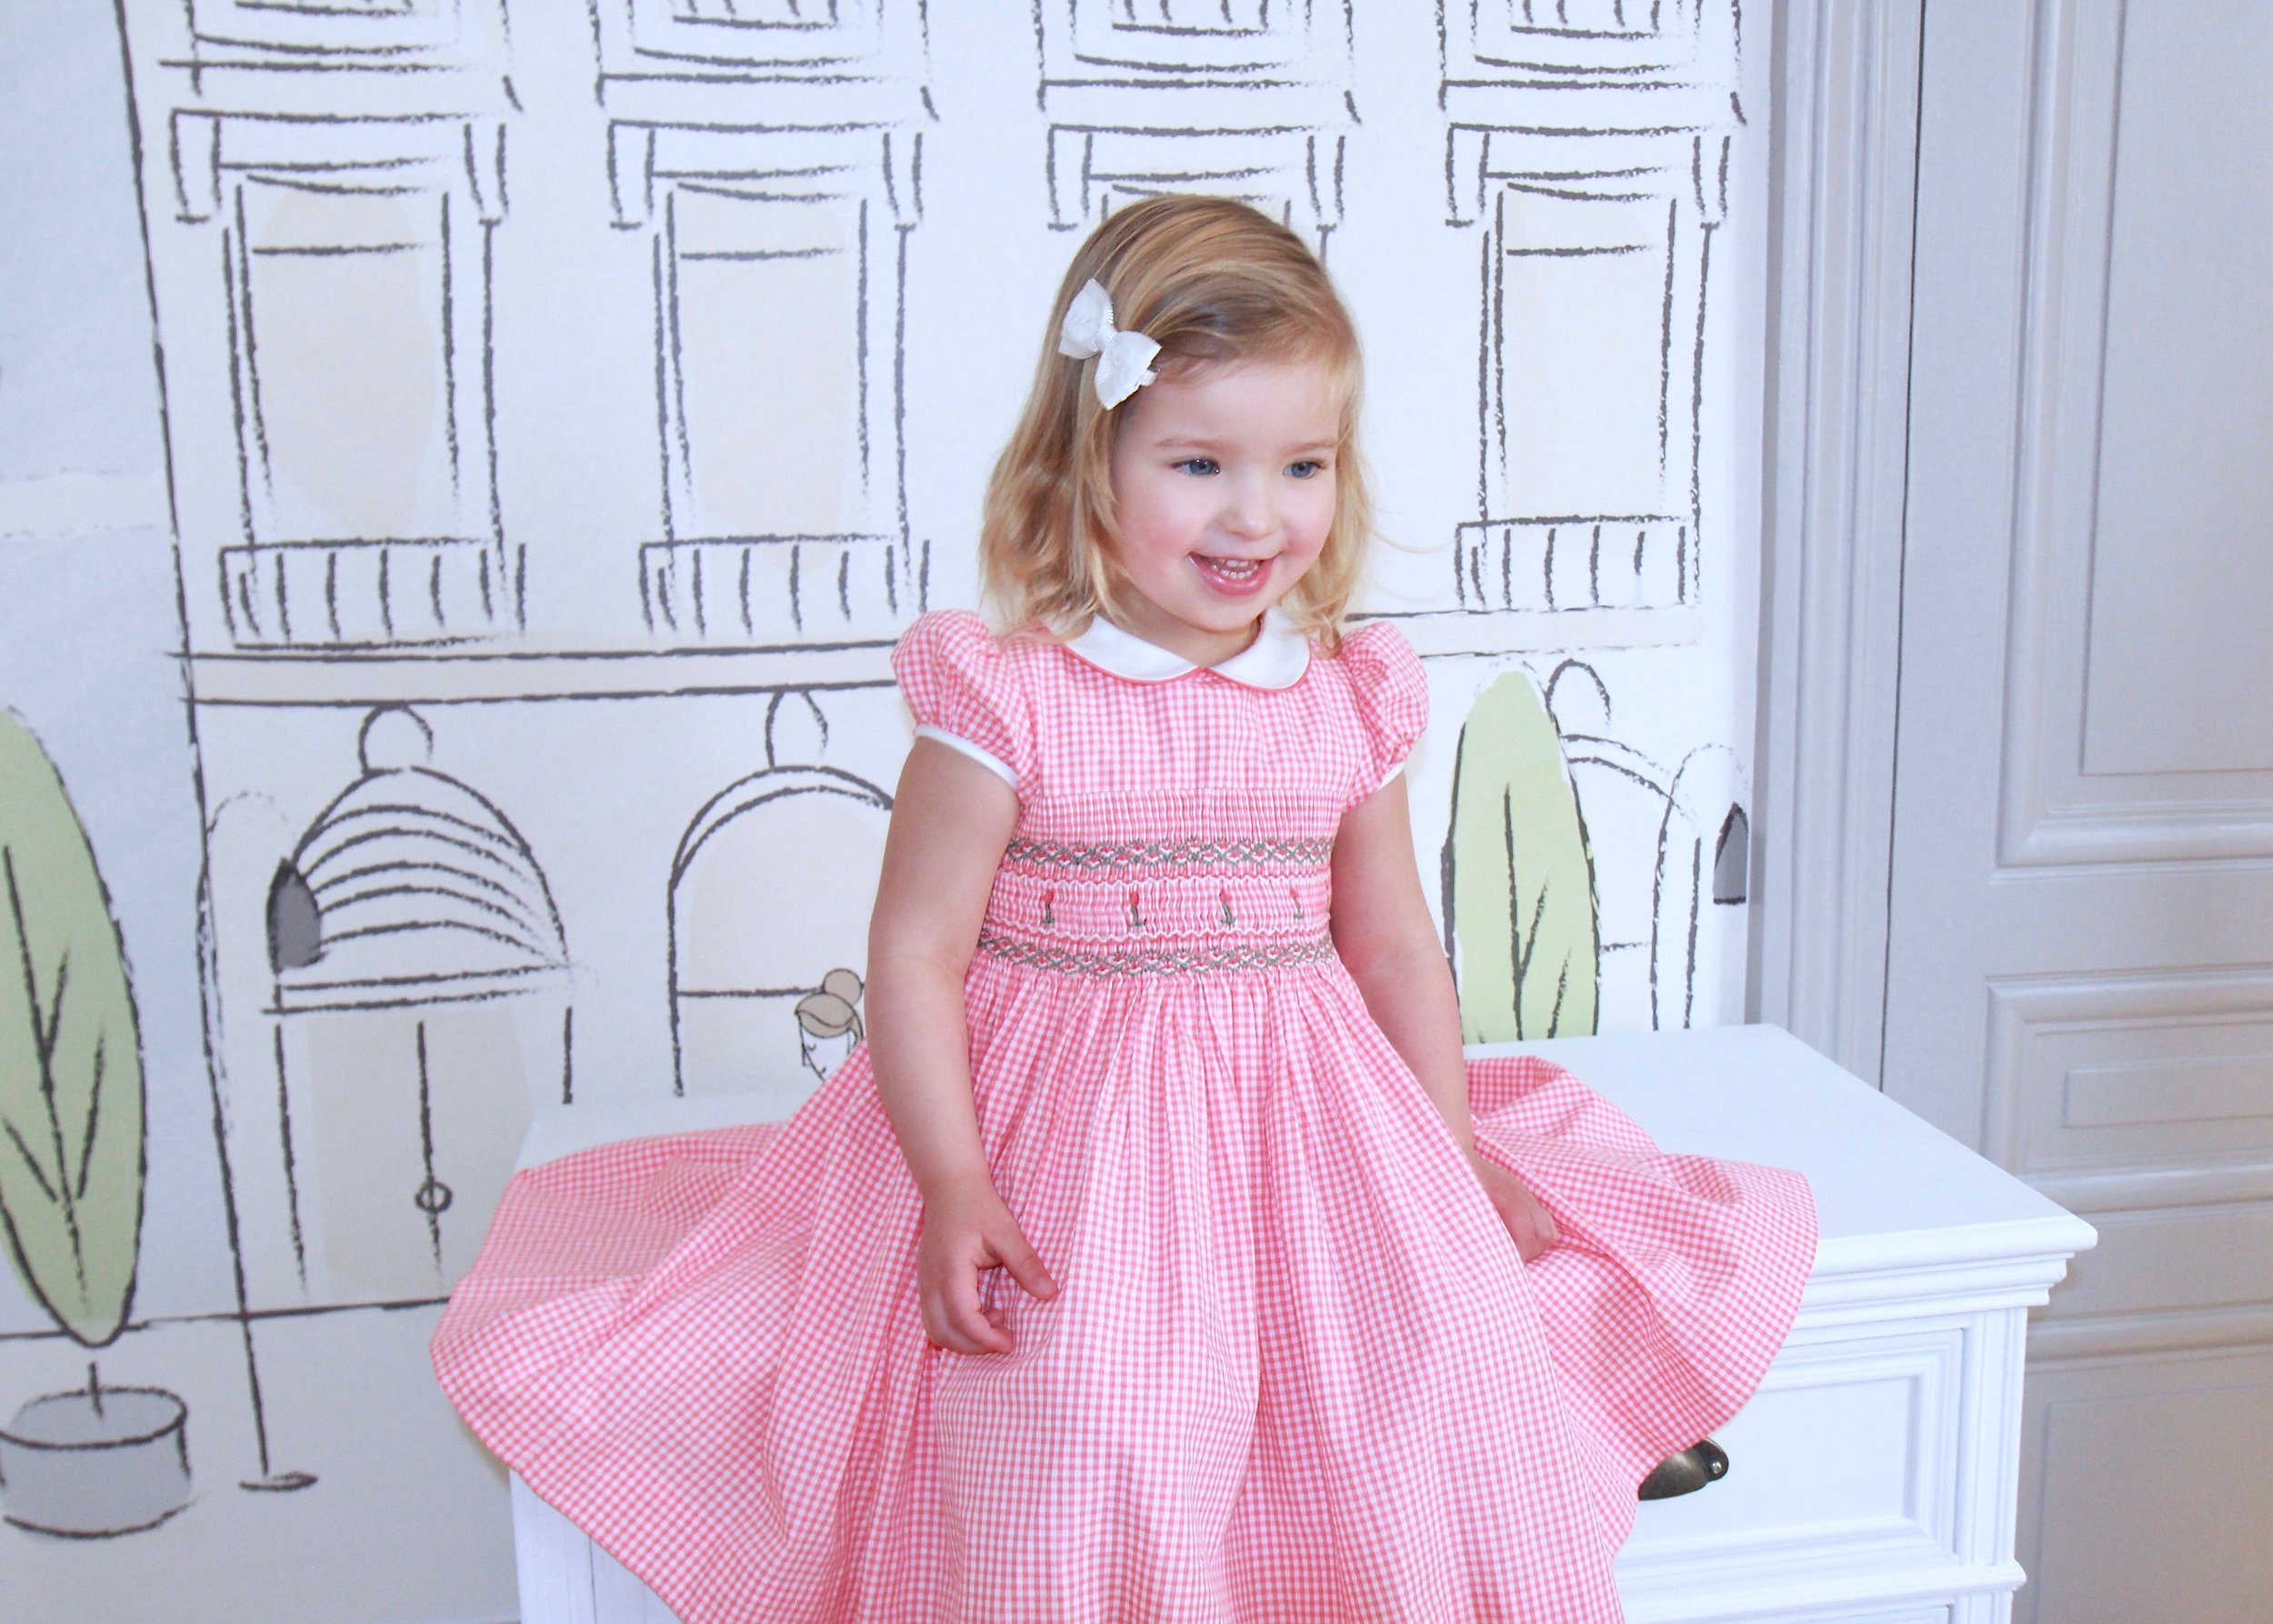 Handmade gingham Cerise smocked dress